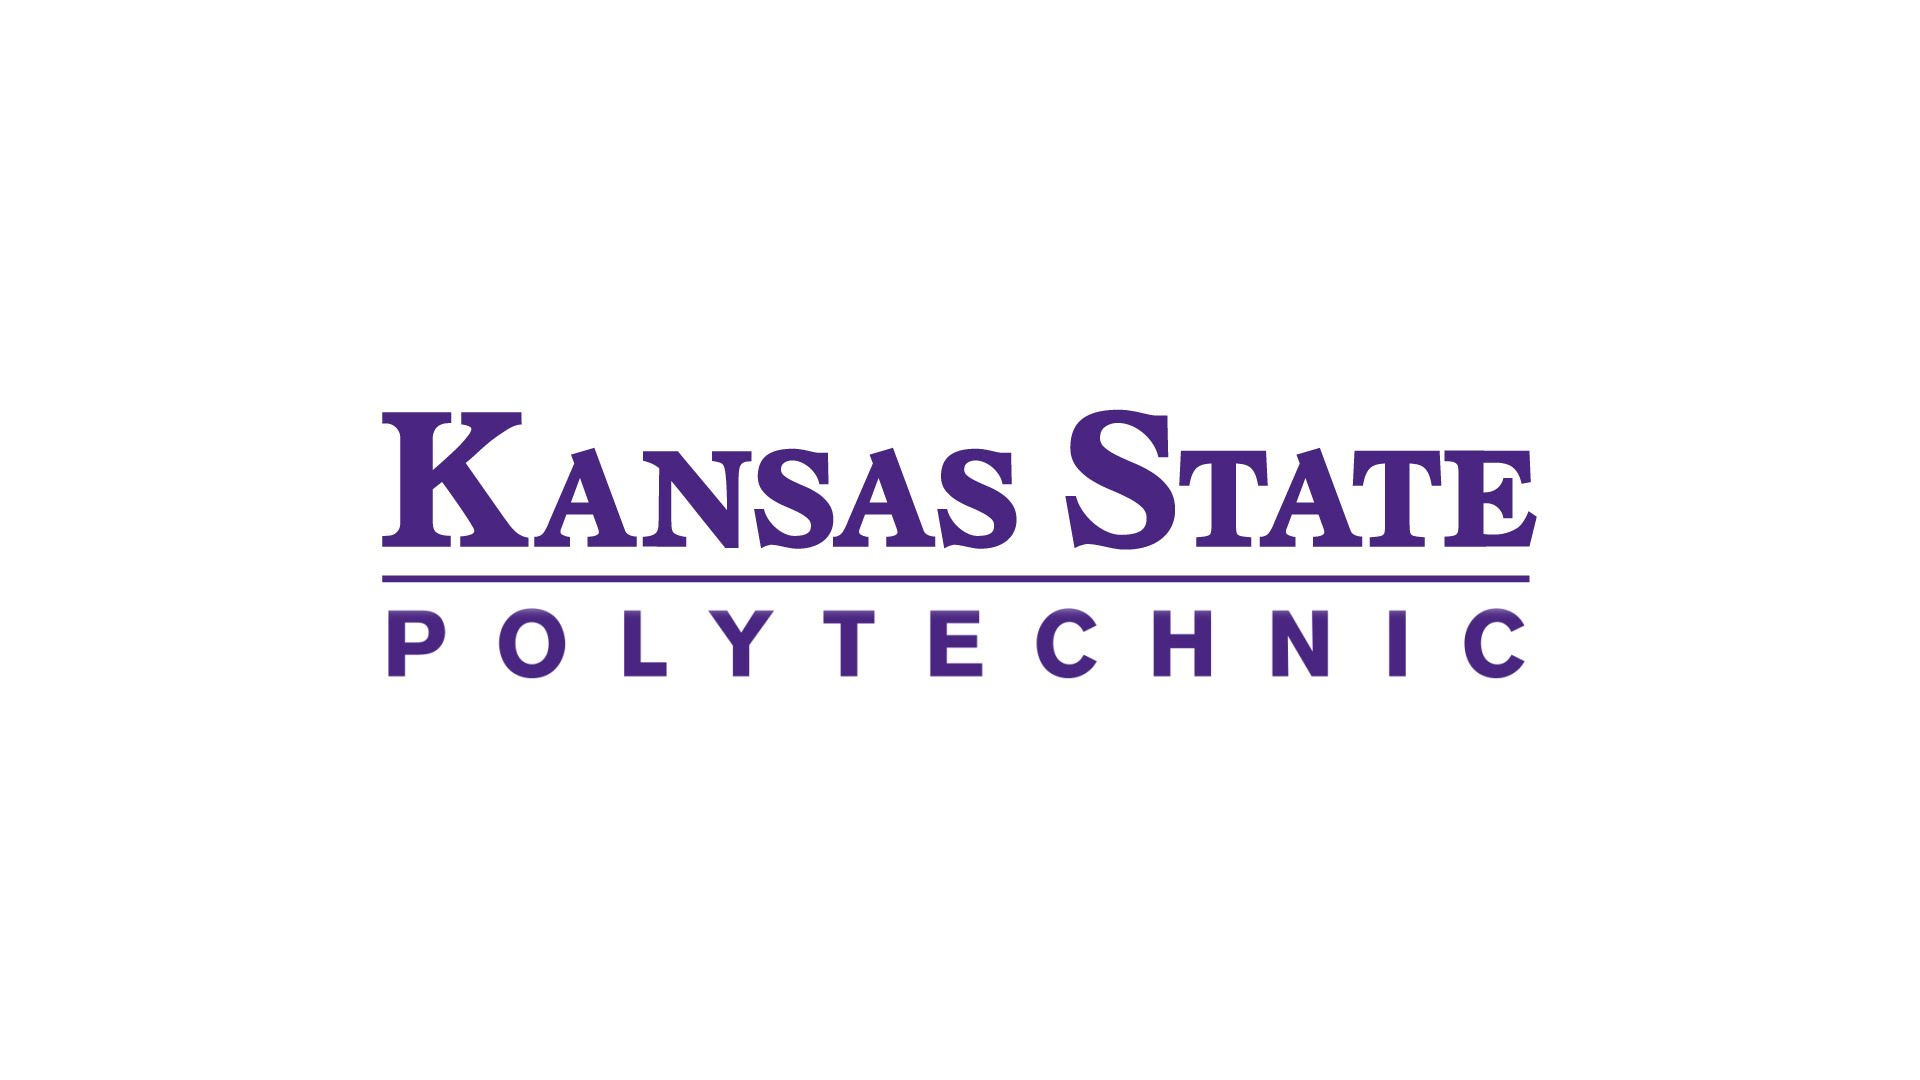 Climate Change Event Planned at Kansas State University Polytechnic